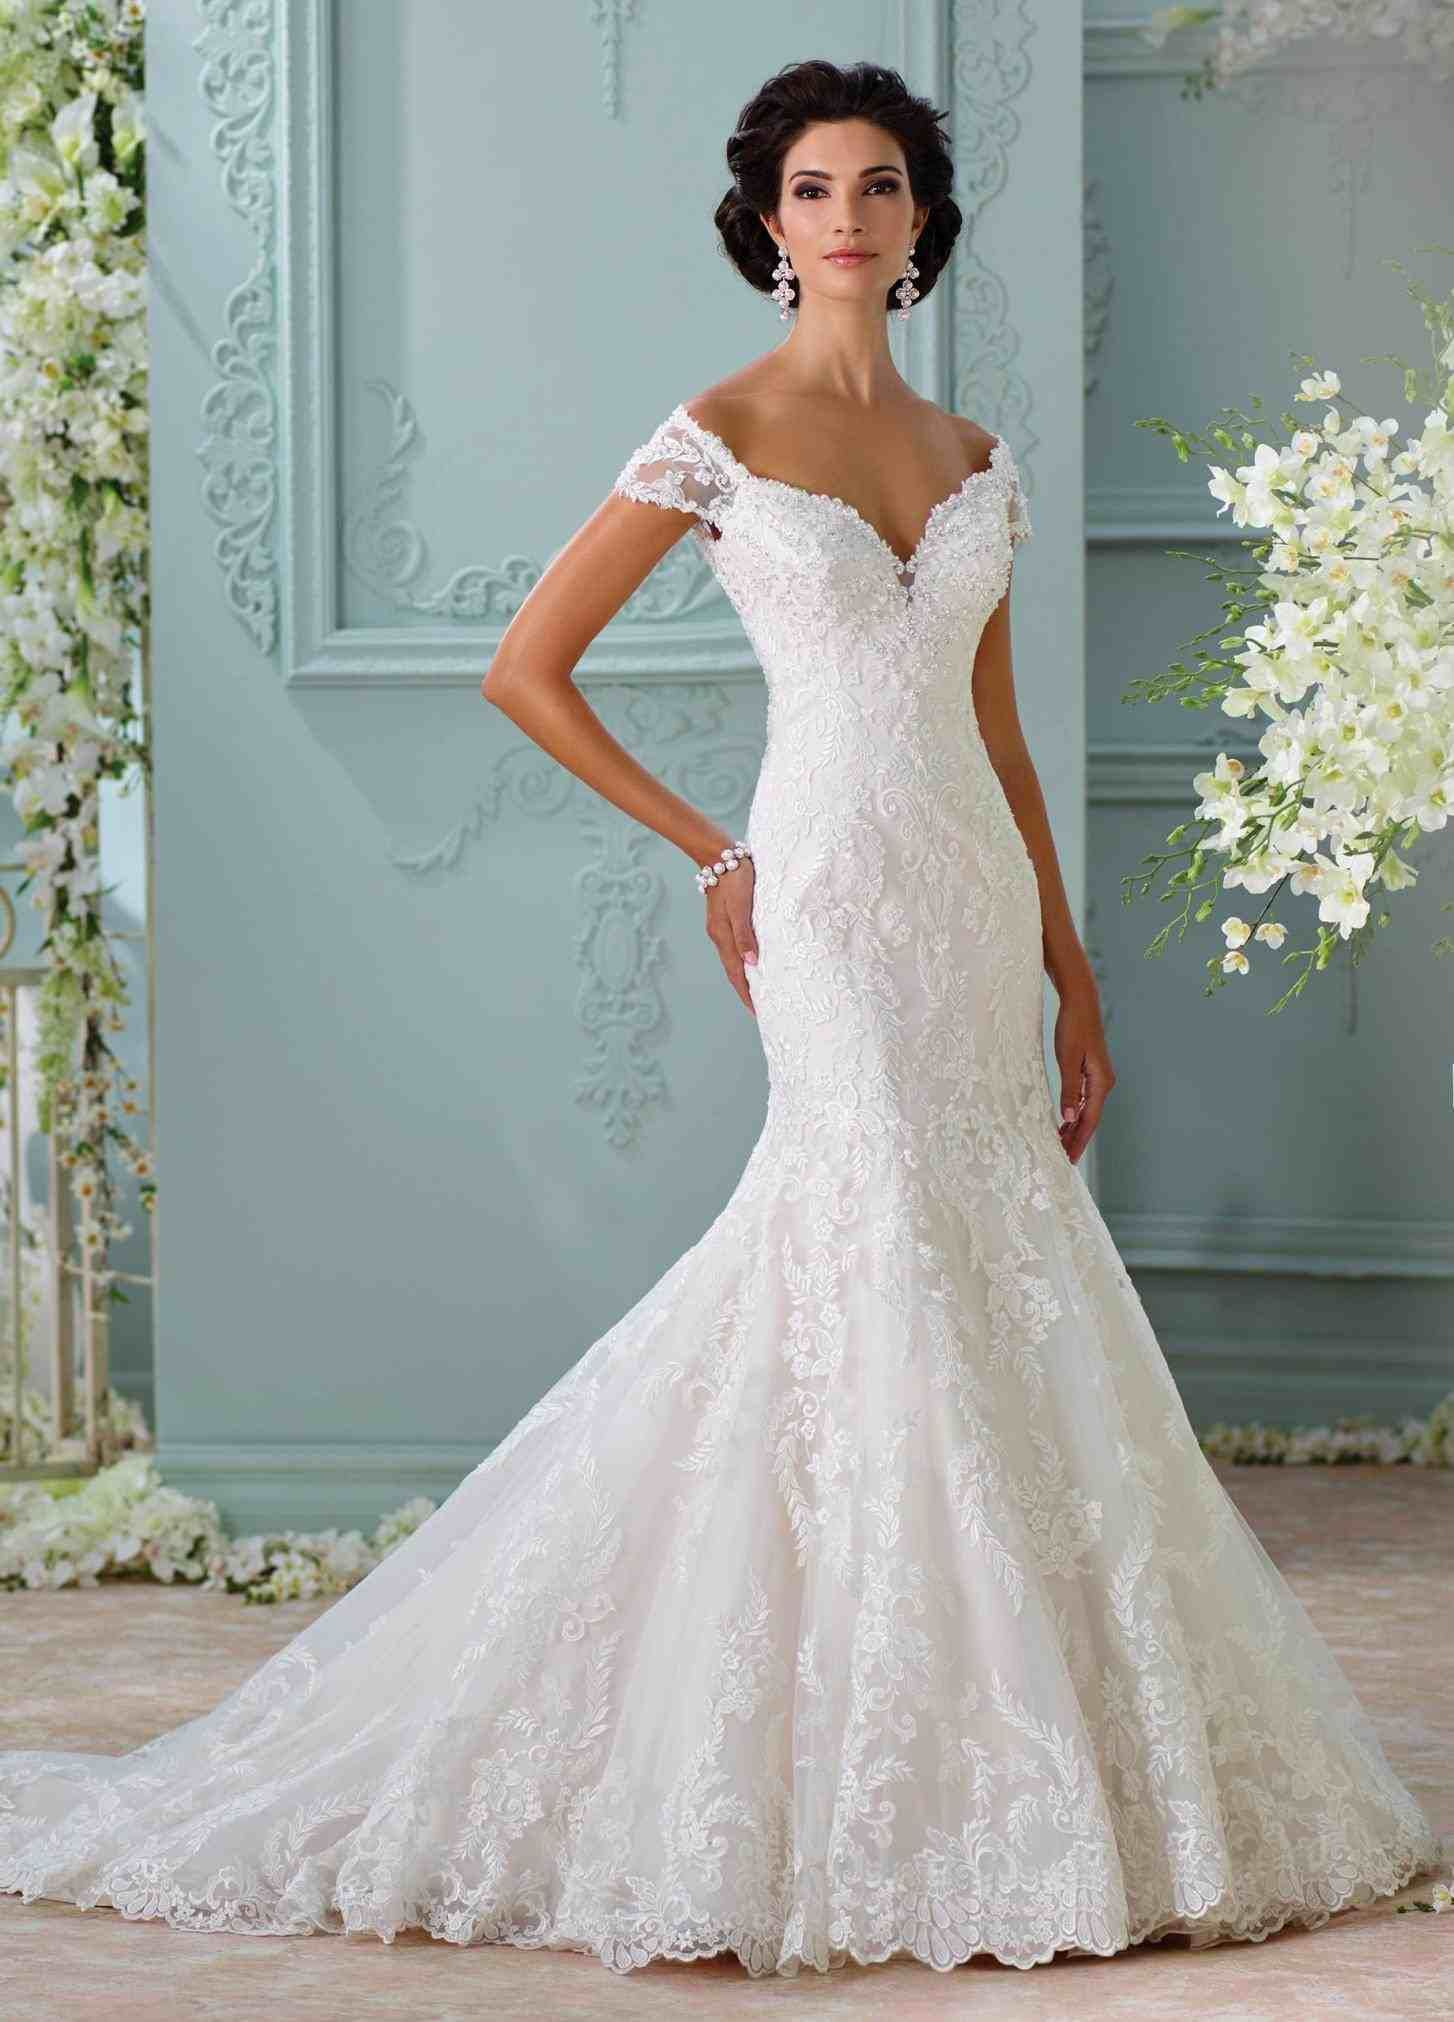 Top 10 New Post Expensive Lace Wedding Dresses Visit Wedbridalsite: Expensive Lace Wedding Dresses At Websimilar.org